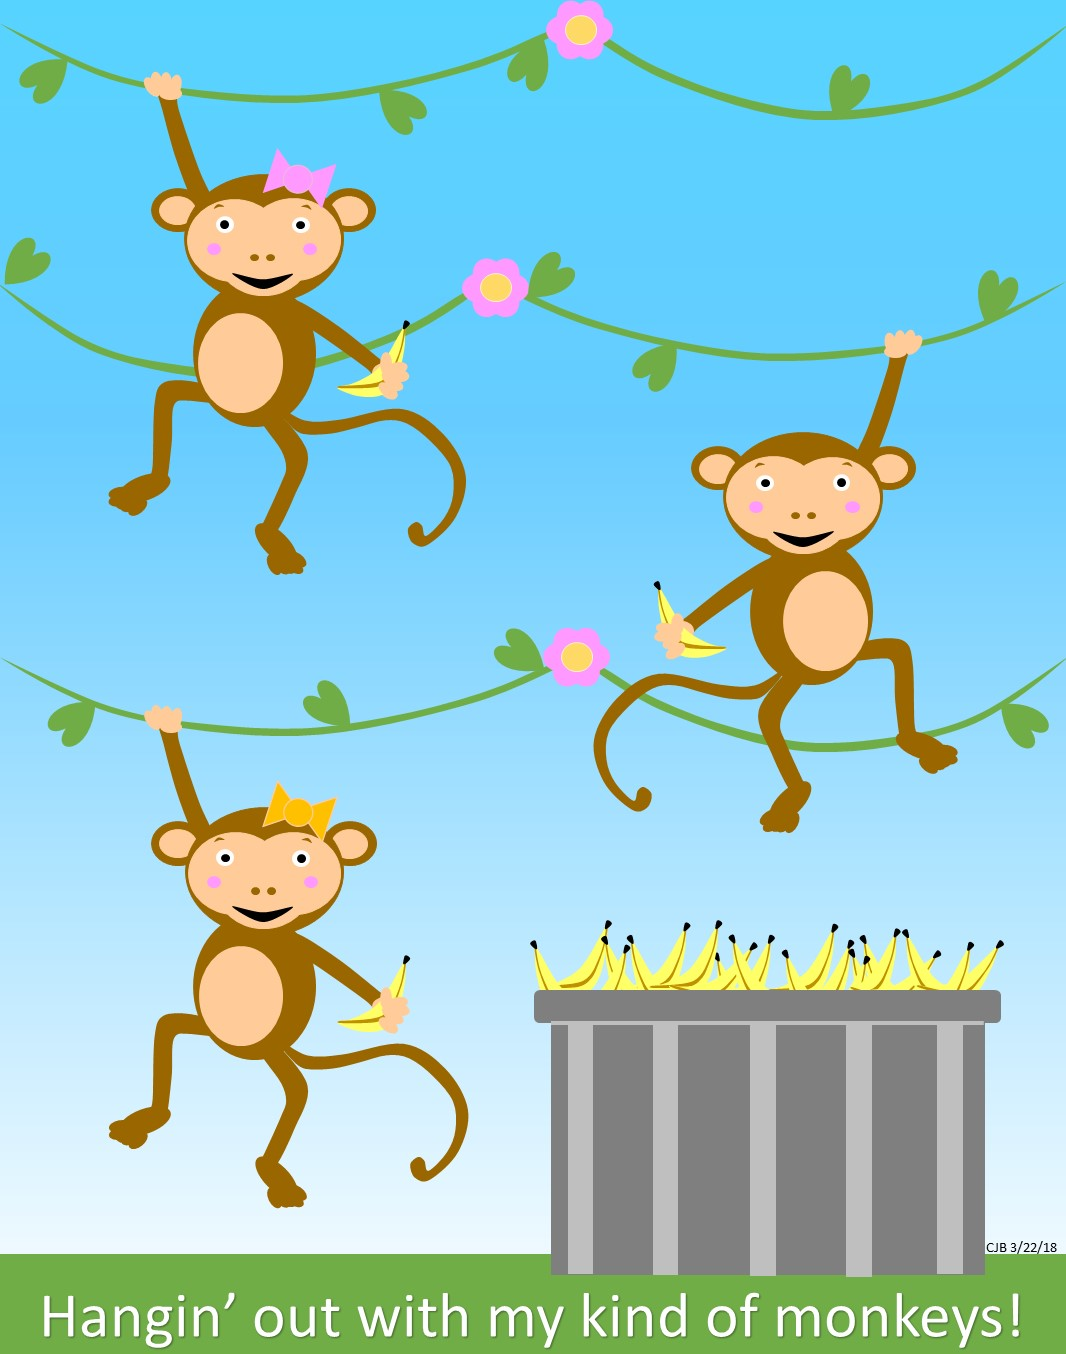 Art by Carolyn J. Braden: My Kind of Monkeys